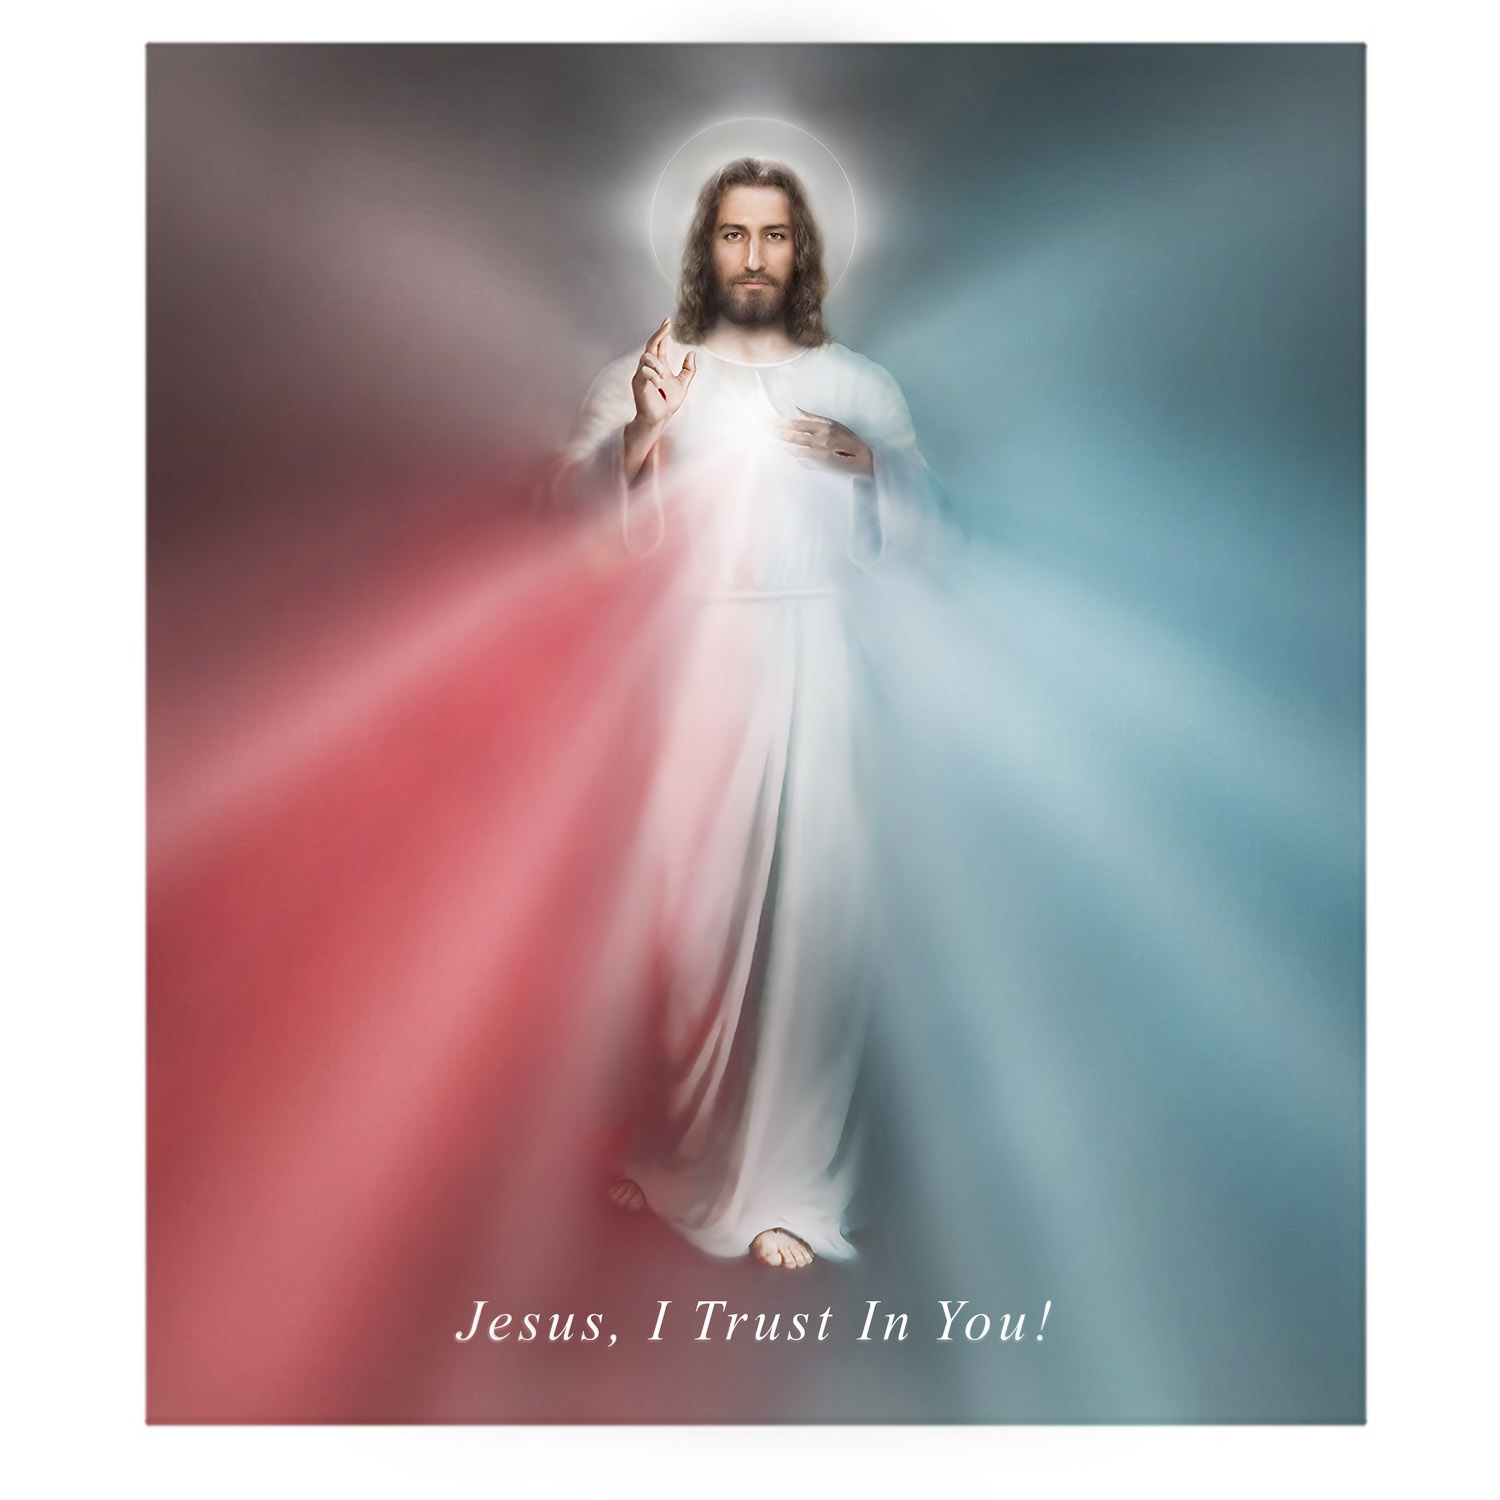 The Divine Mercy Print artwork by Richard L George